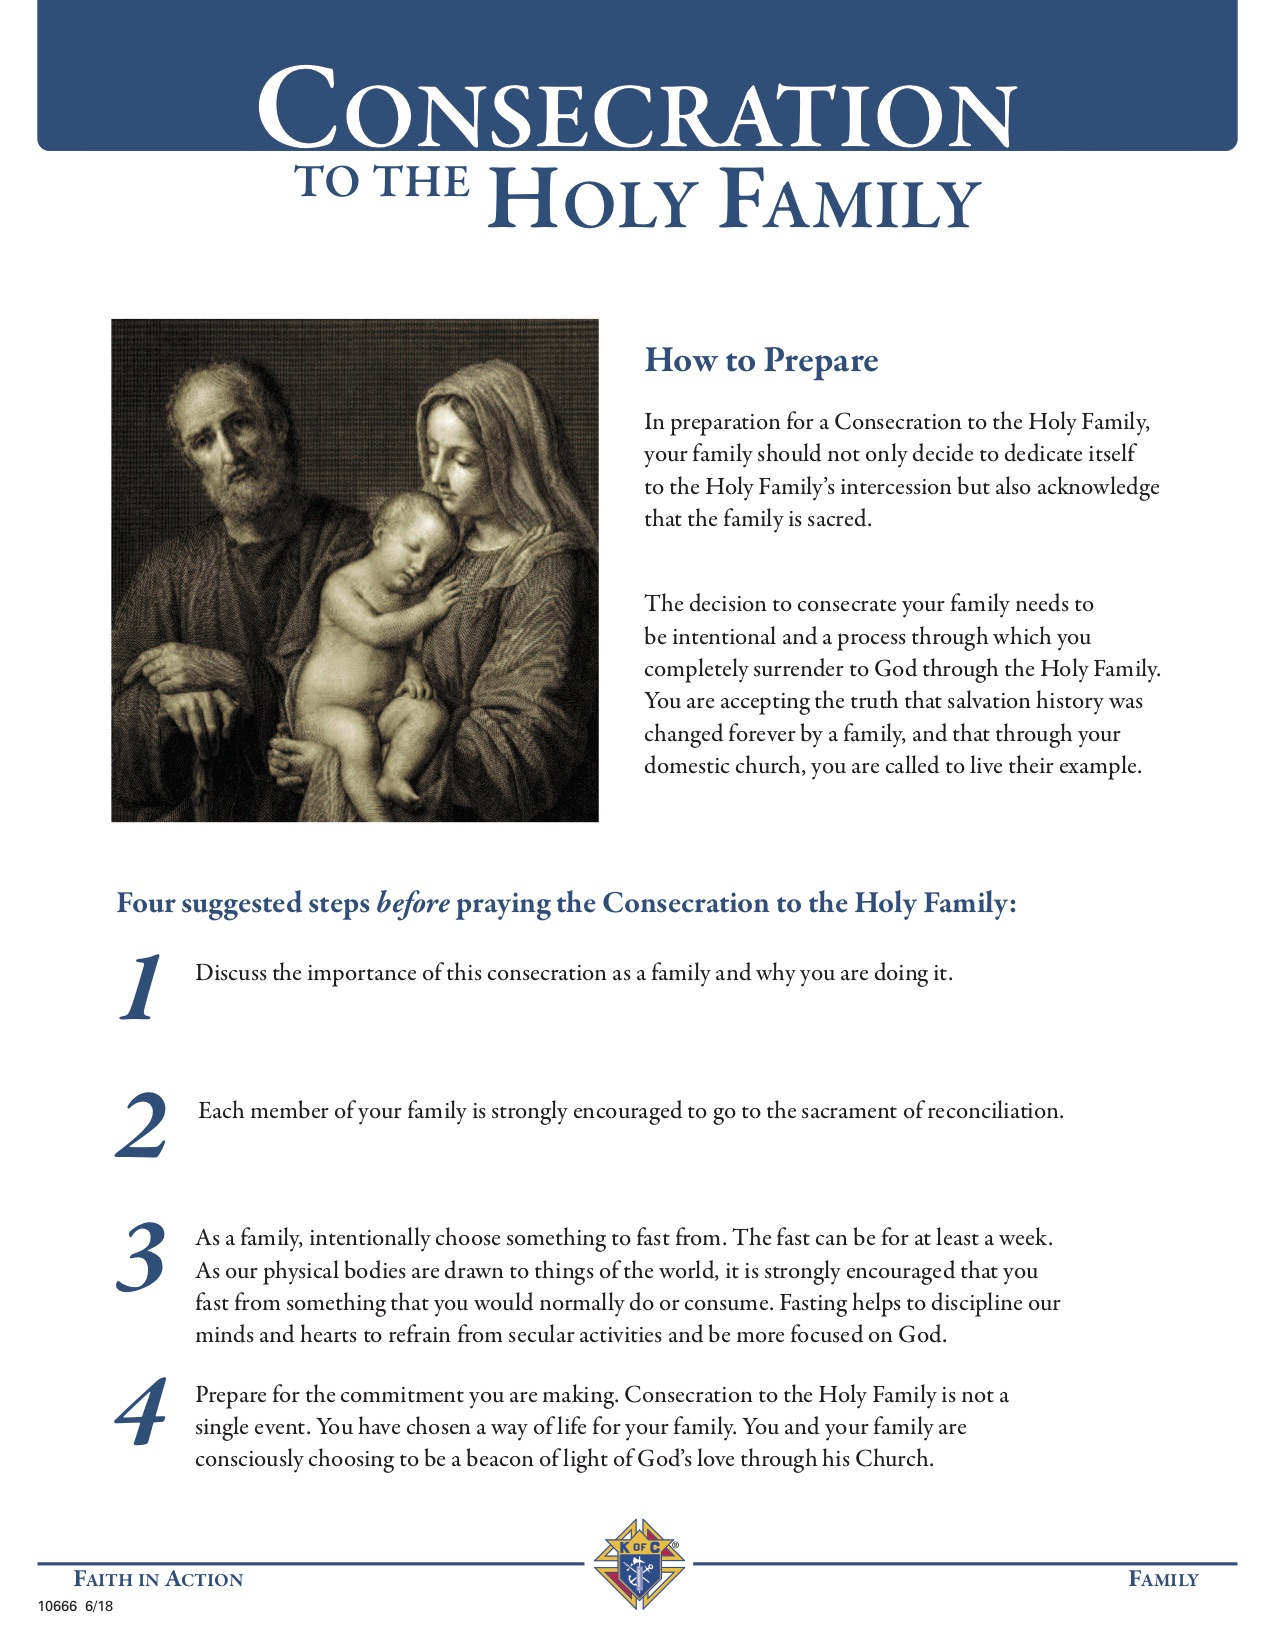 10666-consecration-to-holy-family-preparation.jpg